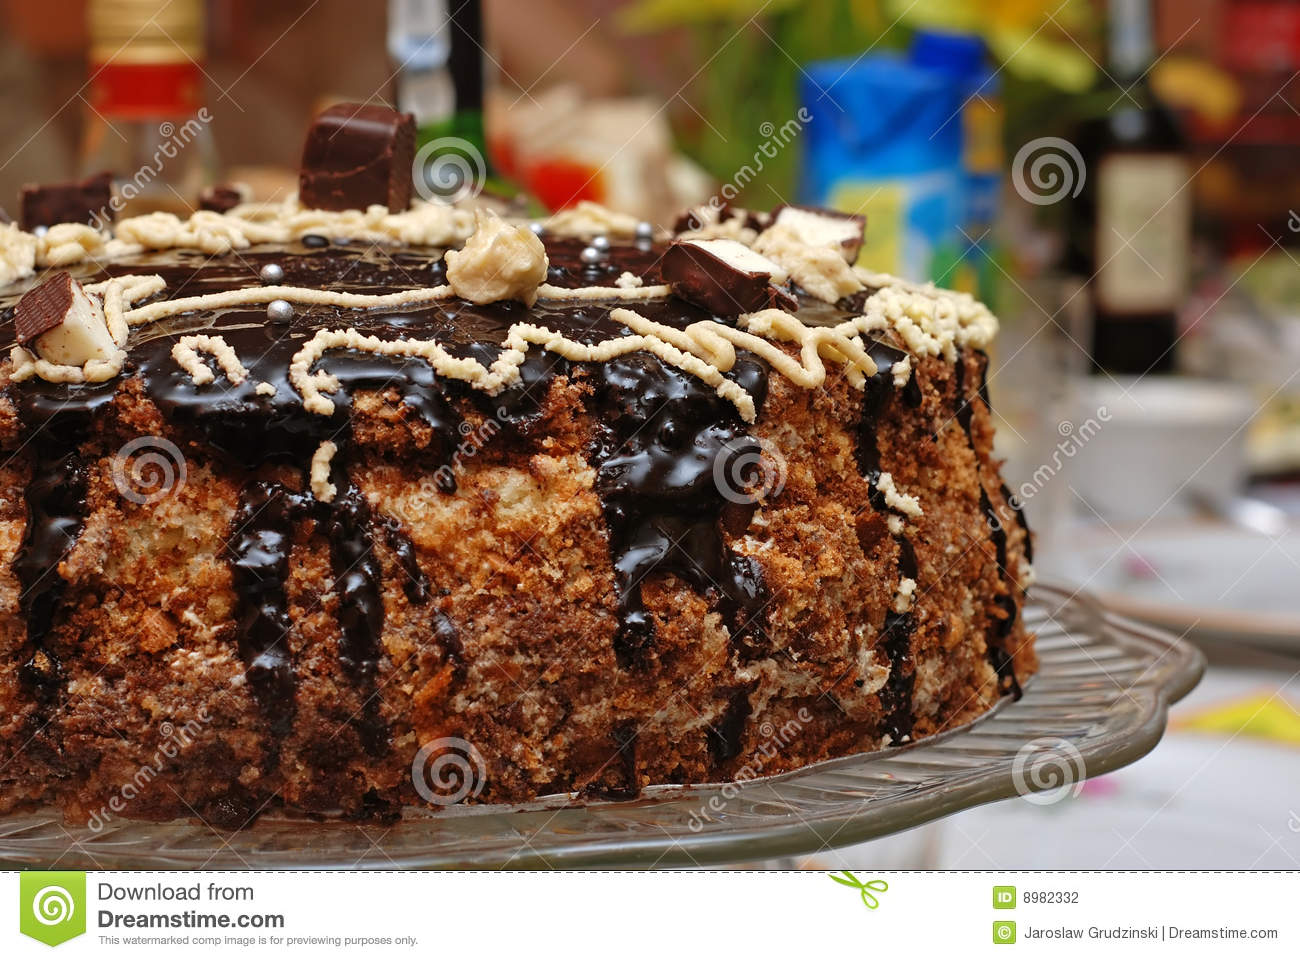 Images Of Delicious Birthday Cake : Delicious birthday cake stock photo. Image of cooking ...